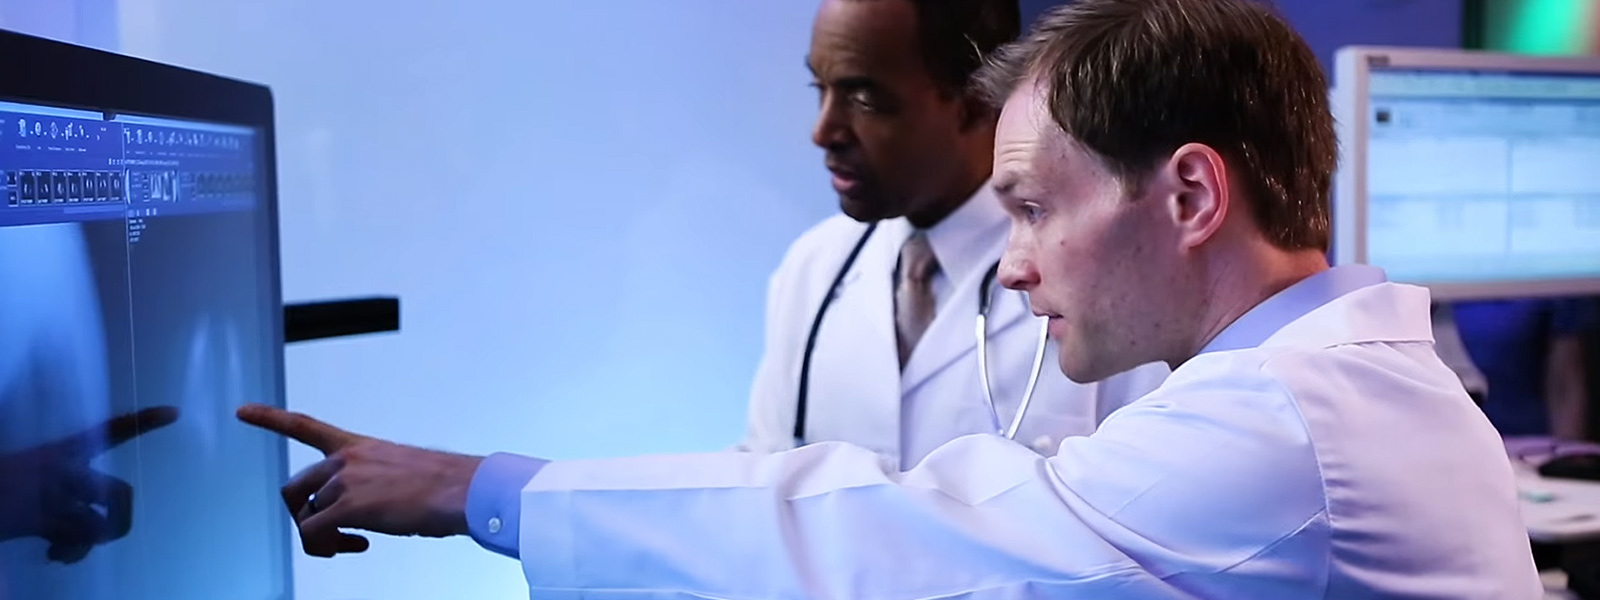 Two lab technicians working in lab